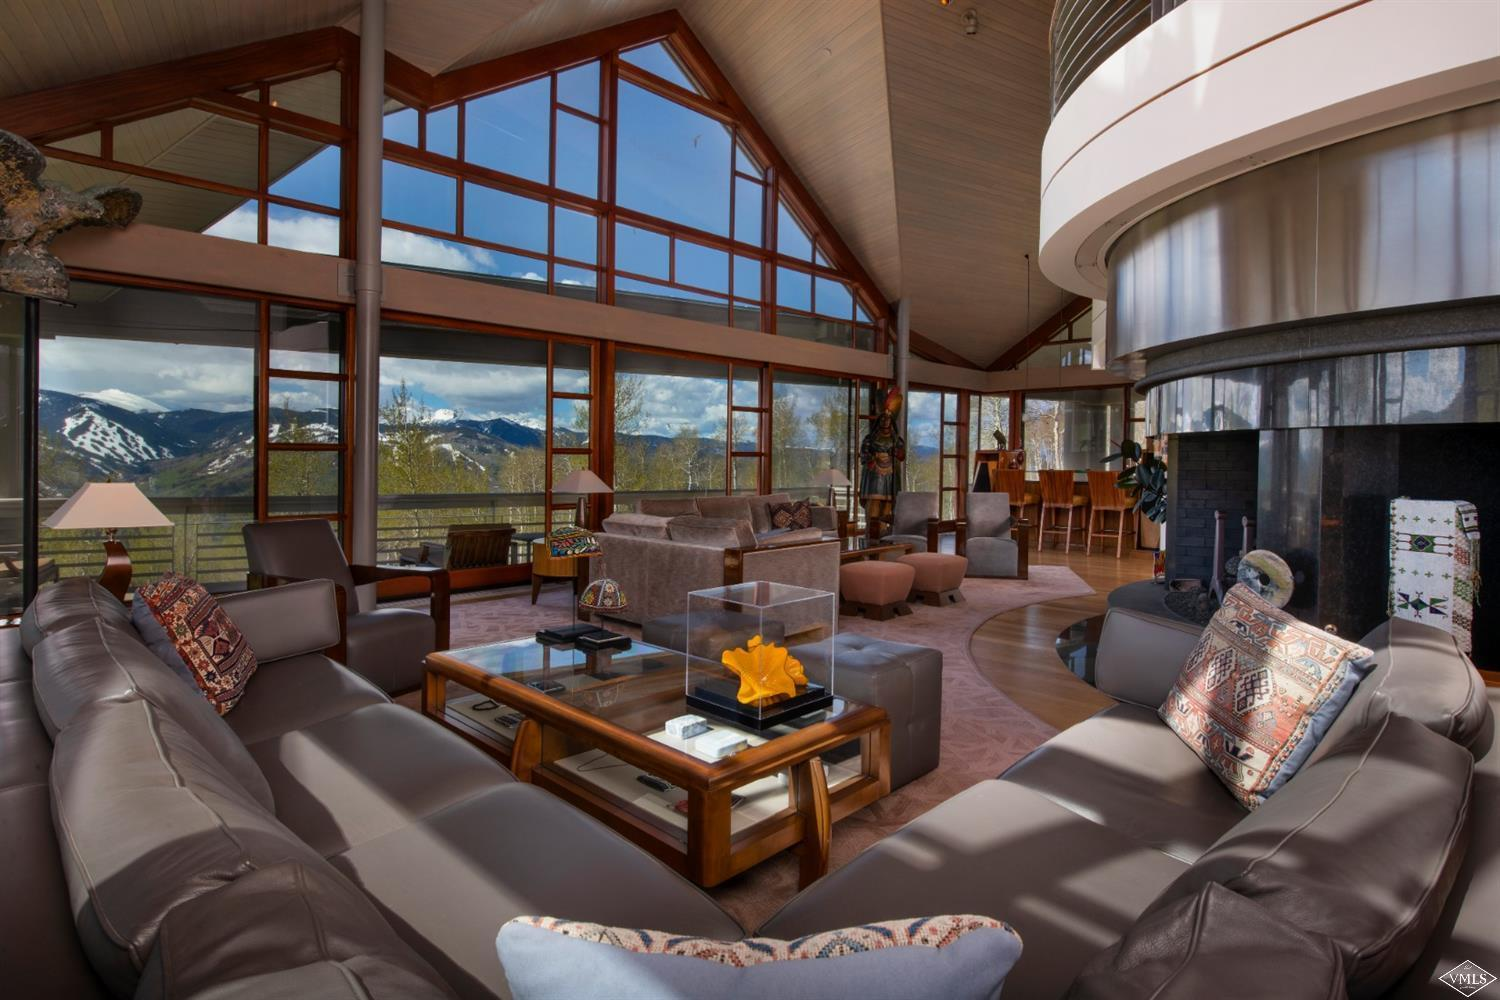 Opportunity to own one of the finest mountain contemporary homes ever built in the Vail Valley. Located in a serene, private setting in this exclusive gated neighborhood adjacent to USFS, this property is an estate of its own offering phenomenal mountain views. Renowned architect, Robert Ziegelman, designed this residence to blend harmoniously with the natural landscape and provide superior living spaces in 3 separate pavilions all with exceptional quality/amazing design. Designer furnished.